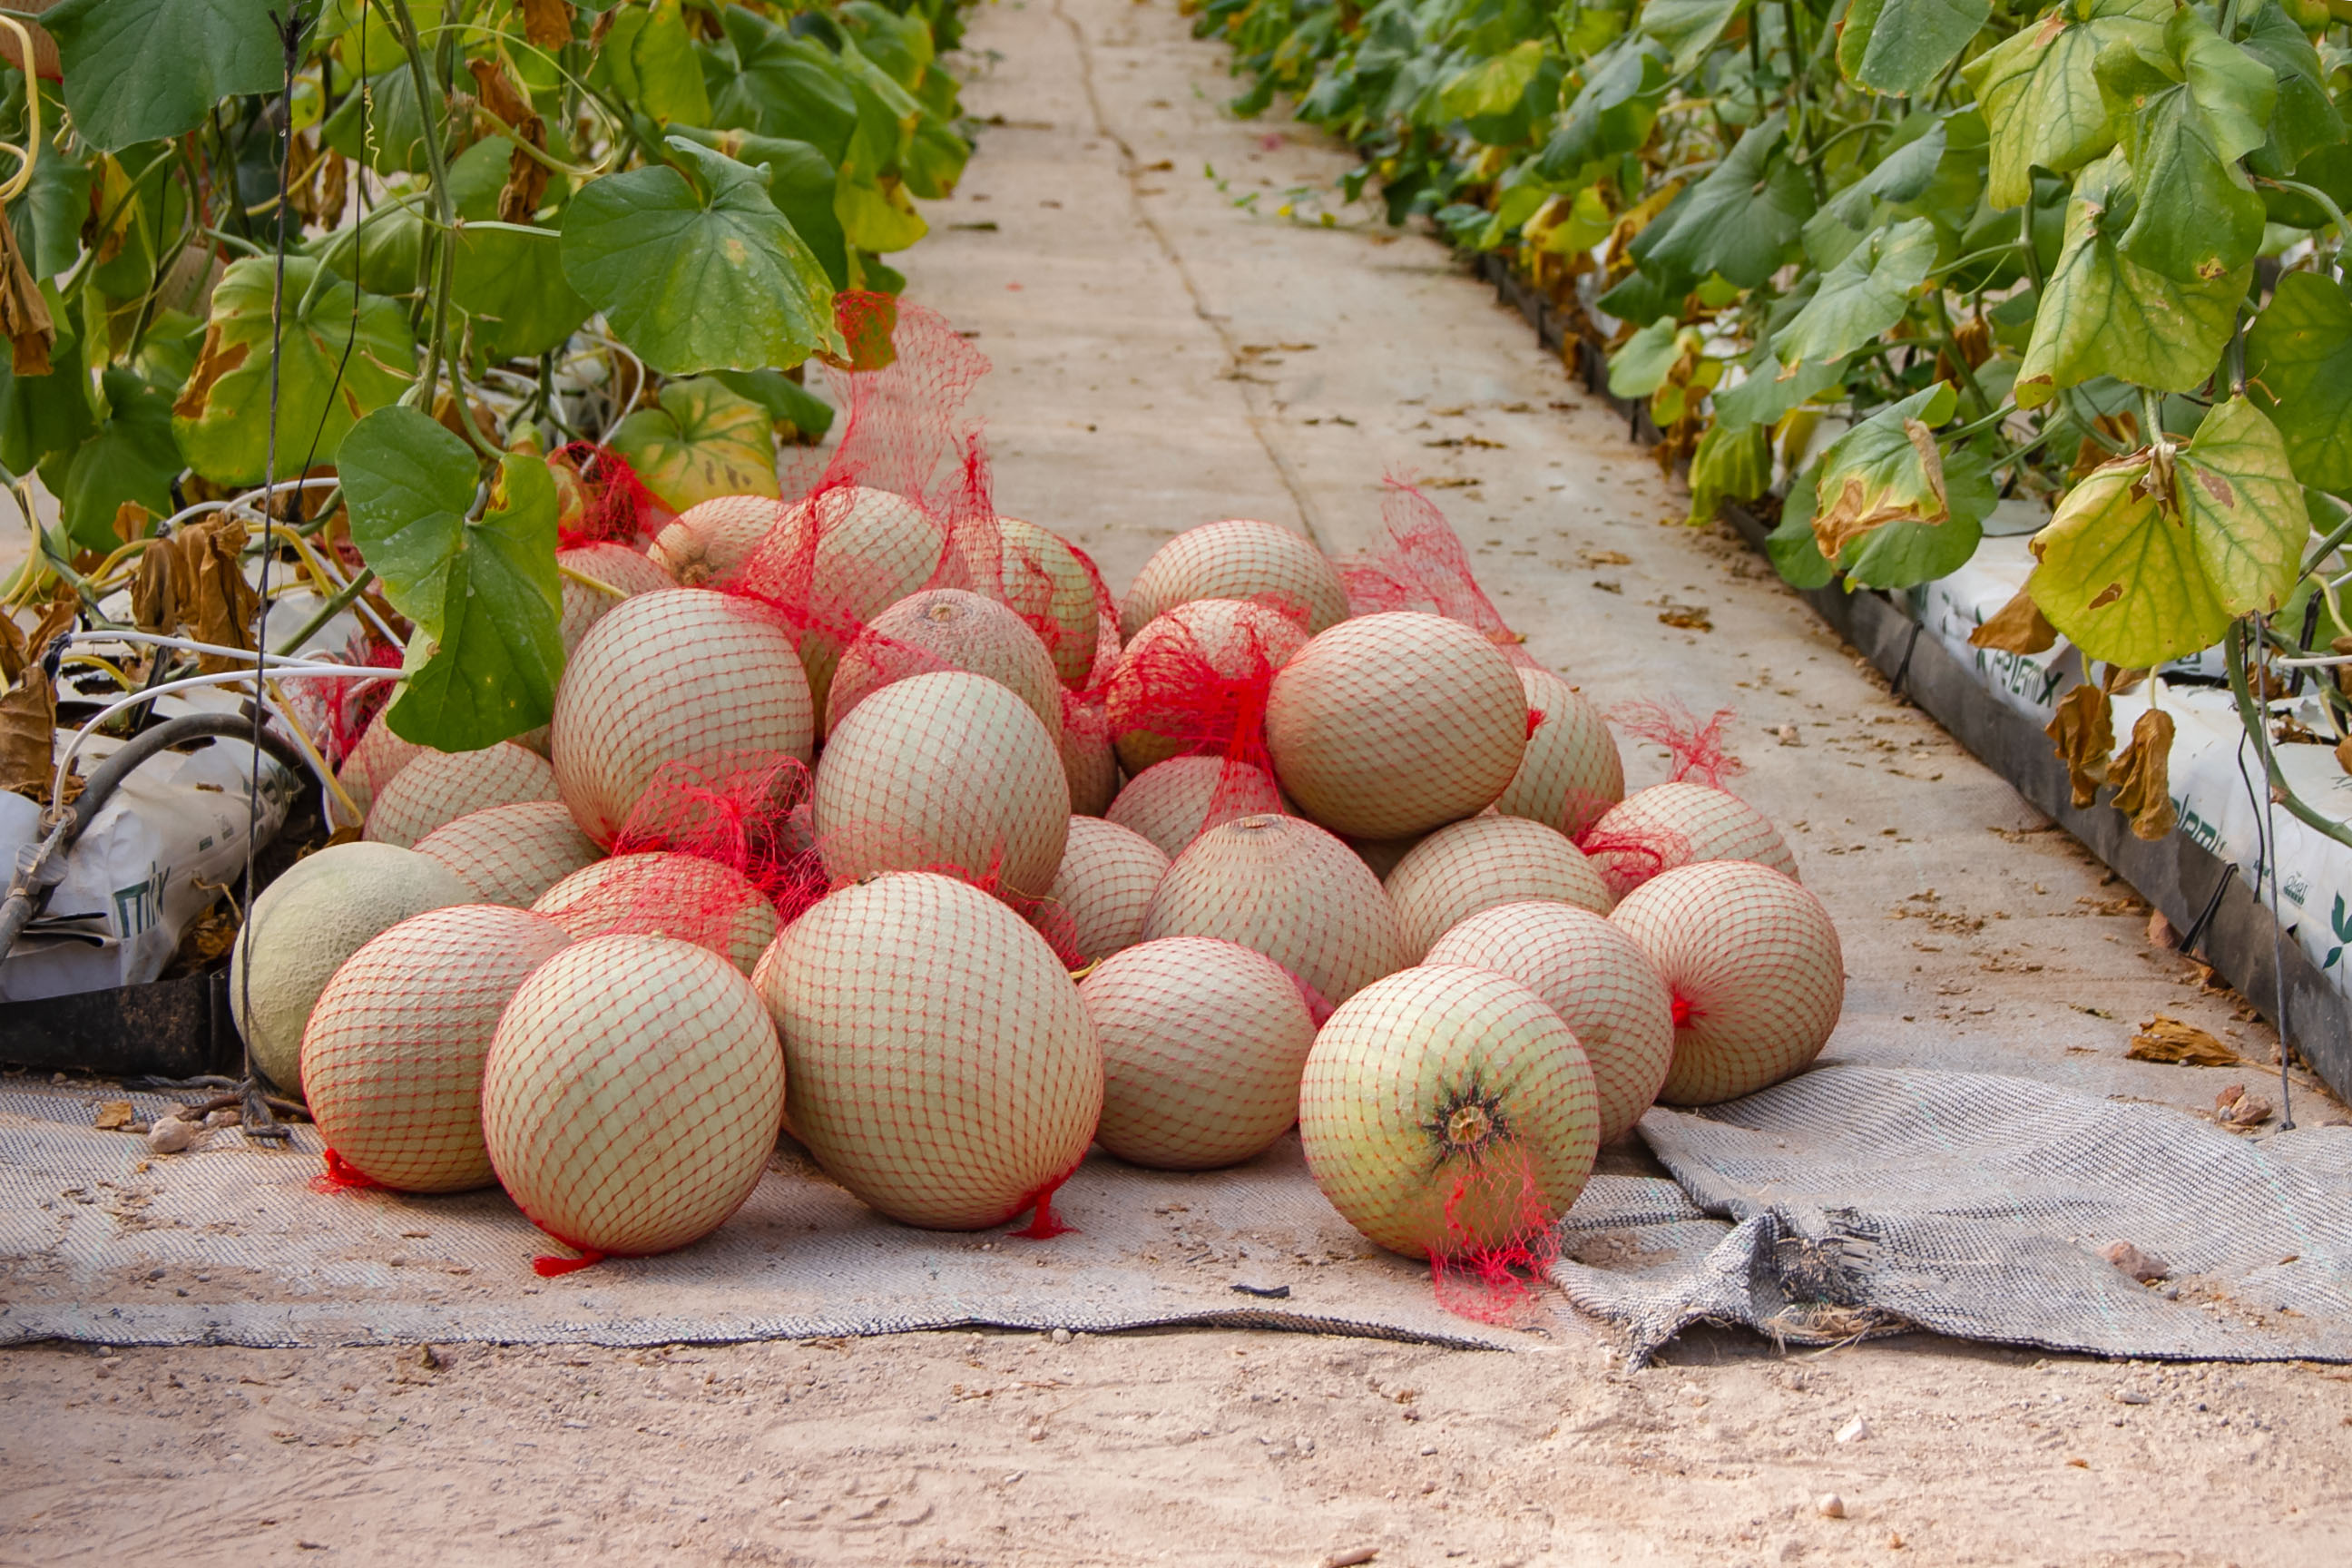 Panama Organics melons, Simply Natural Farms' premium organic brand of fruits and Vegetables, being harvested